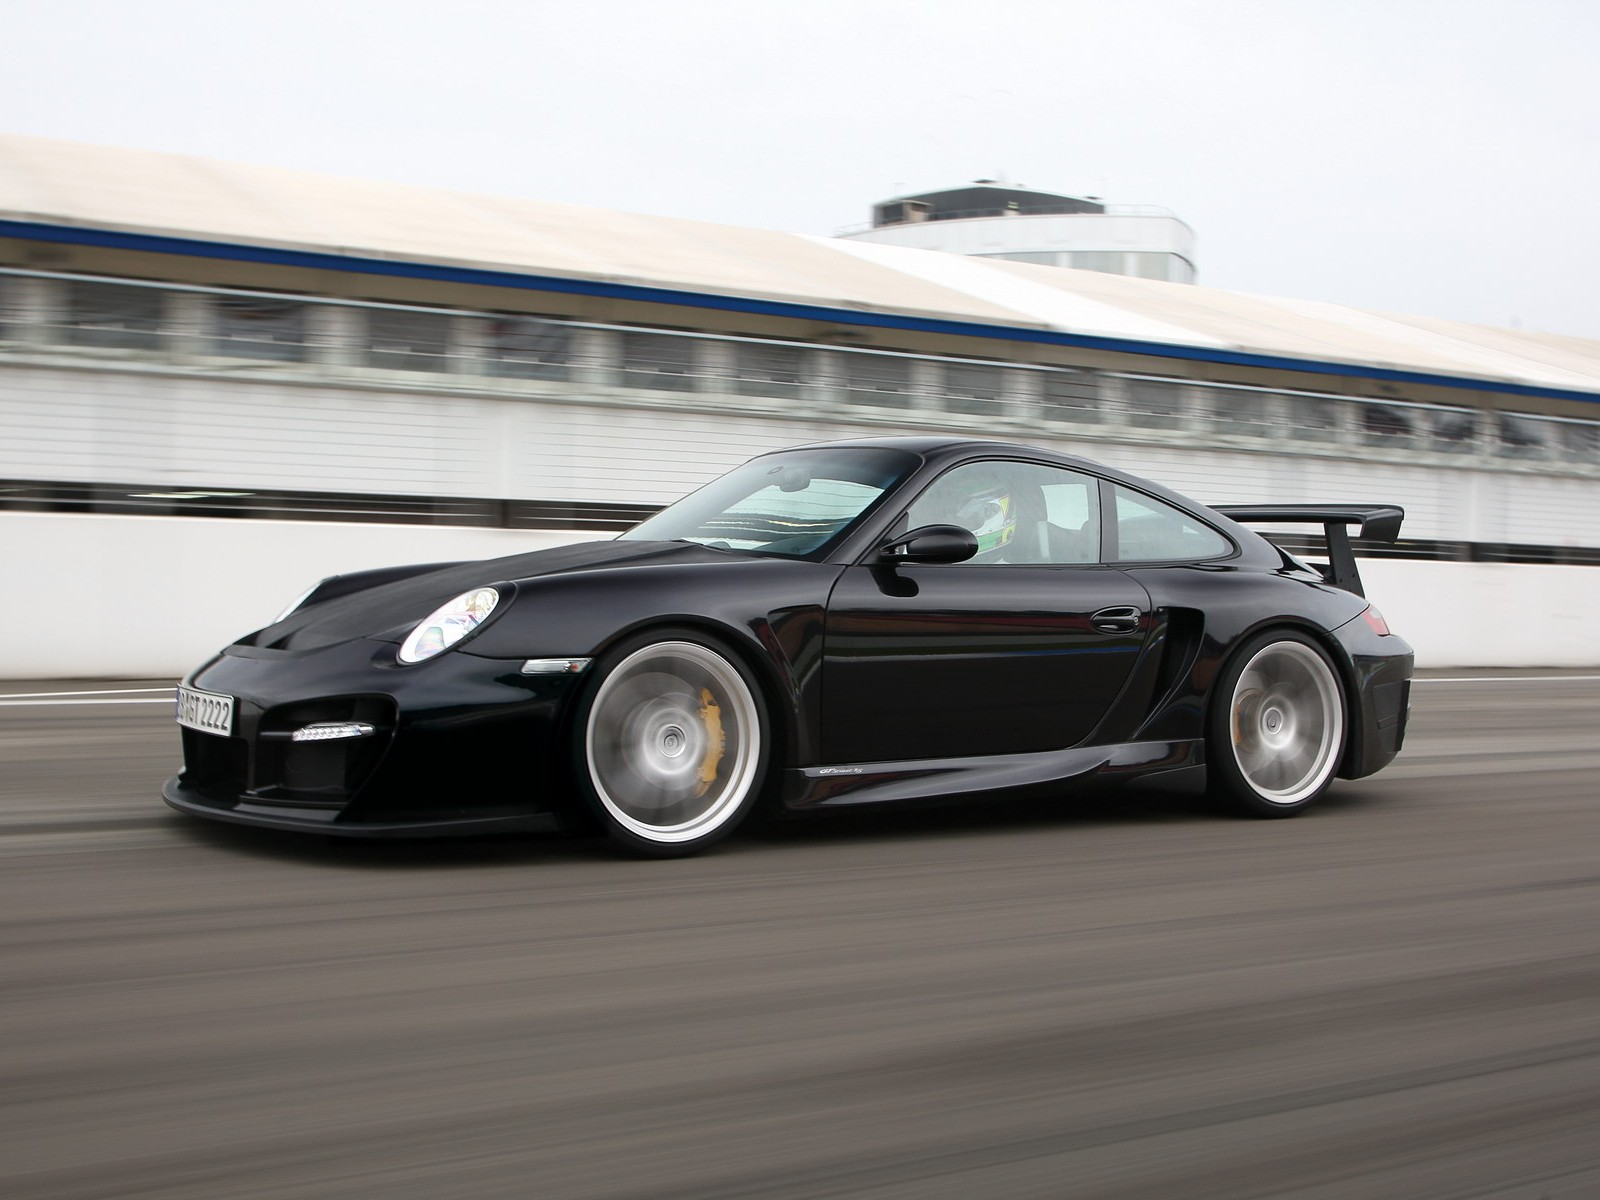 porsche-gt2-wallpaper-1 Cozy Porsche 911 Gt2 Rs Wallpaper Cars Trend